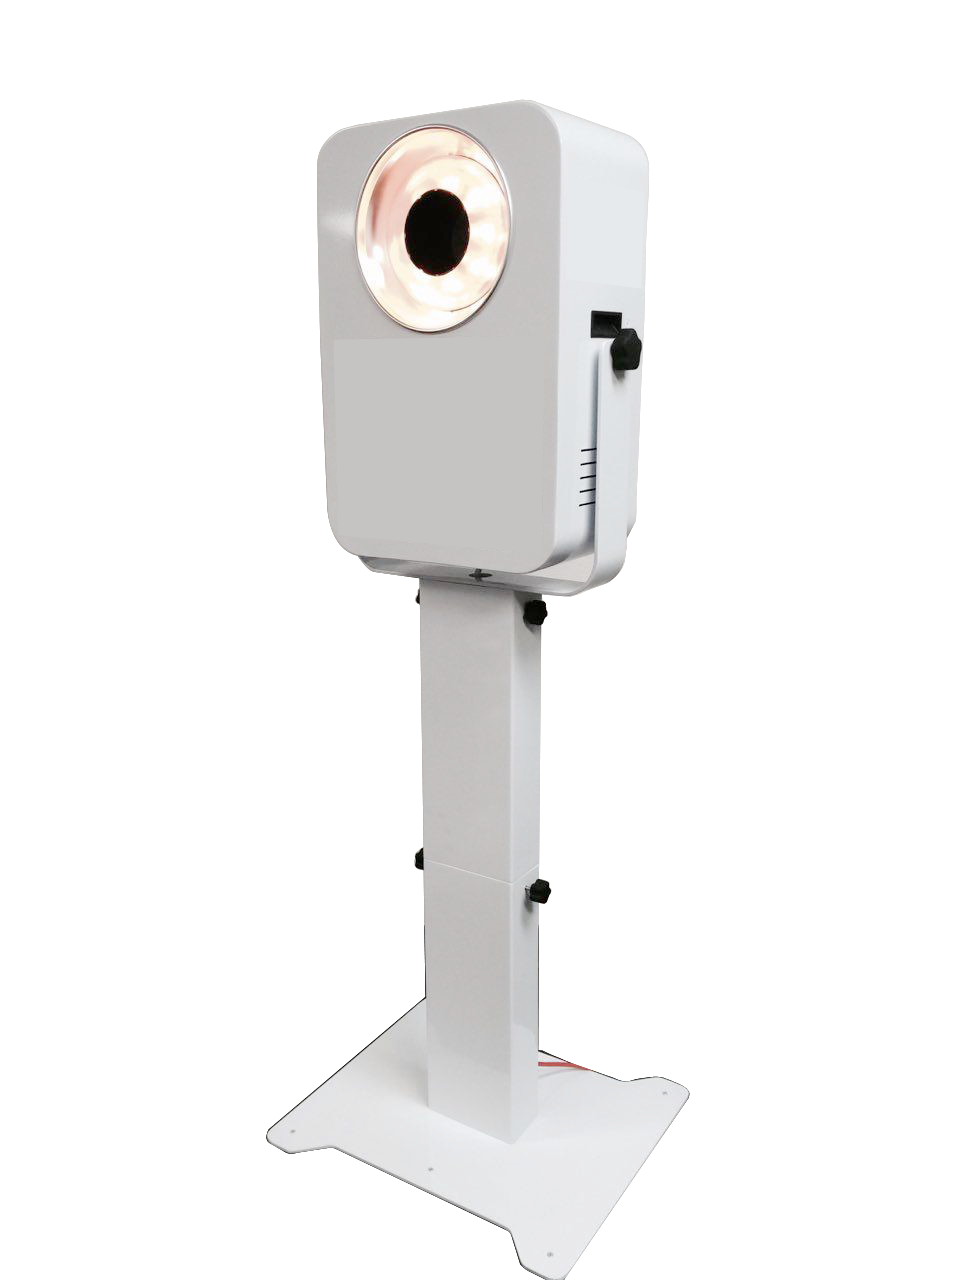 Push-Button Selfie Stations - Made for both outdoor and indoor applications, selfie-stations can be placed anywhere. Use with RFID sorting or without. Incredibly popular with guests.